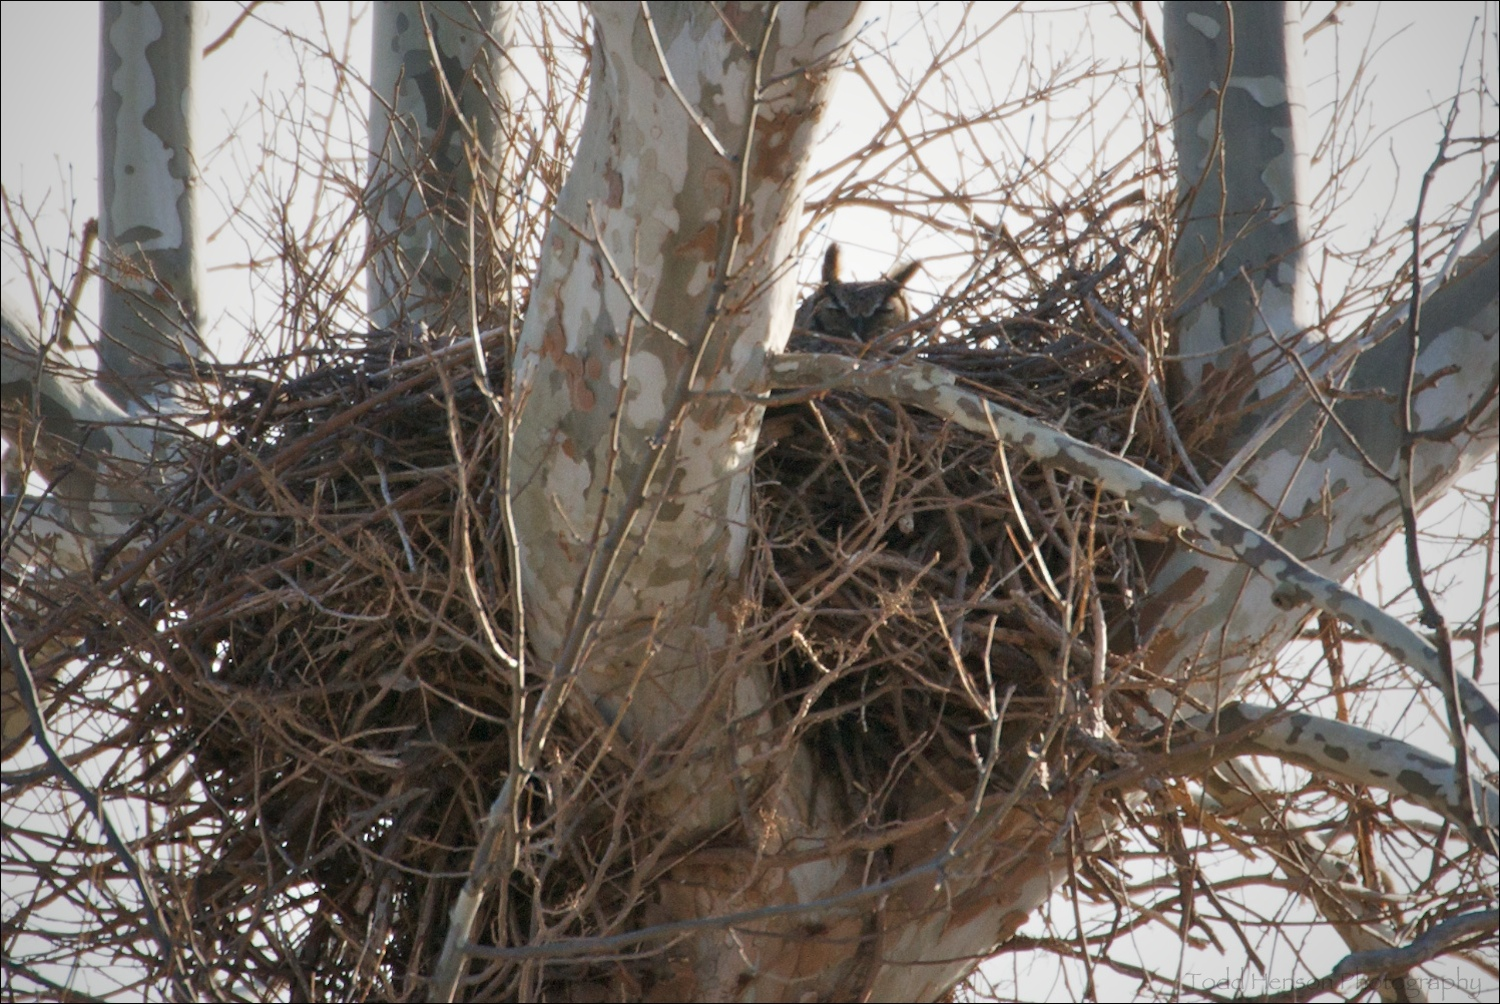 Adult Great Horned Owl in nest. February 27, 2010